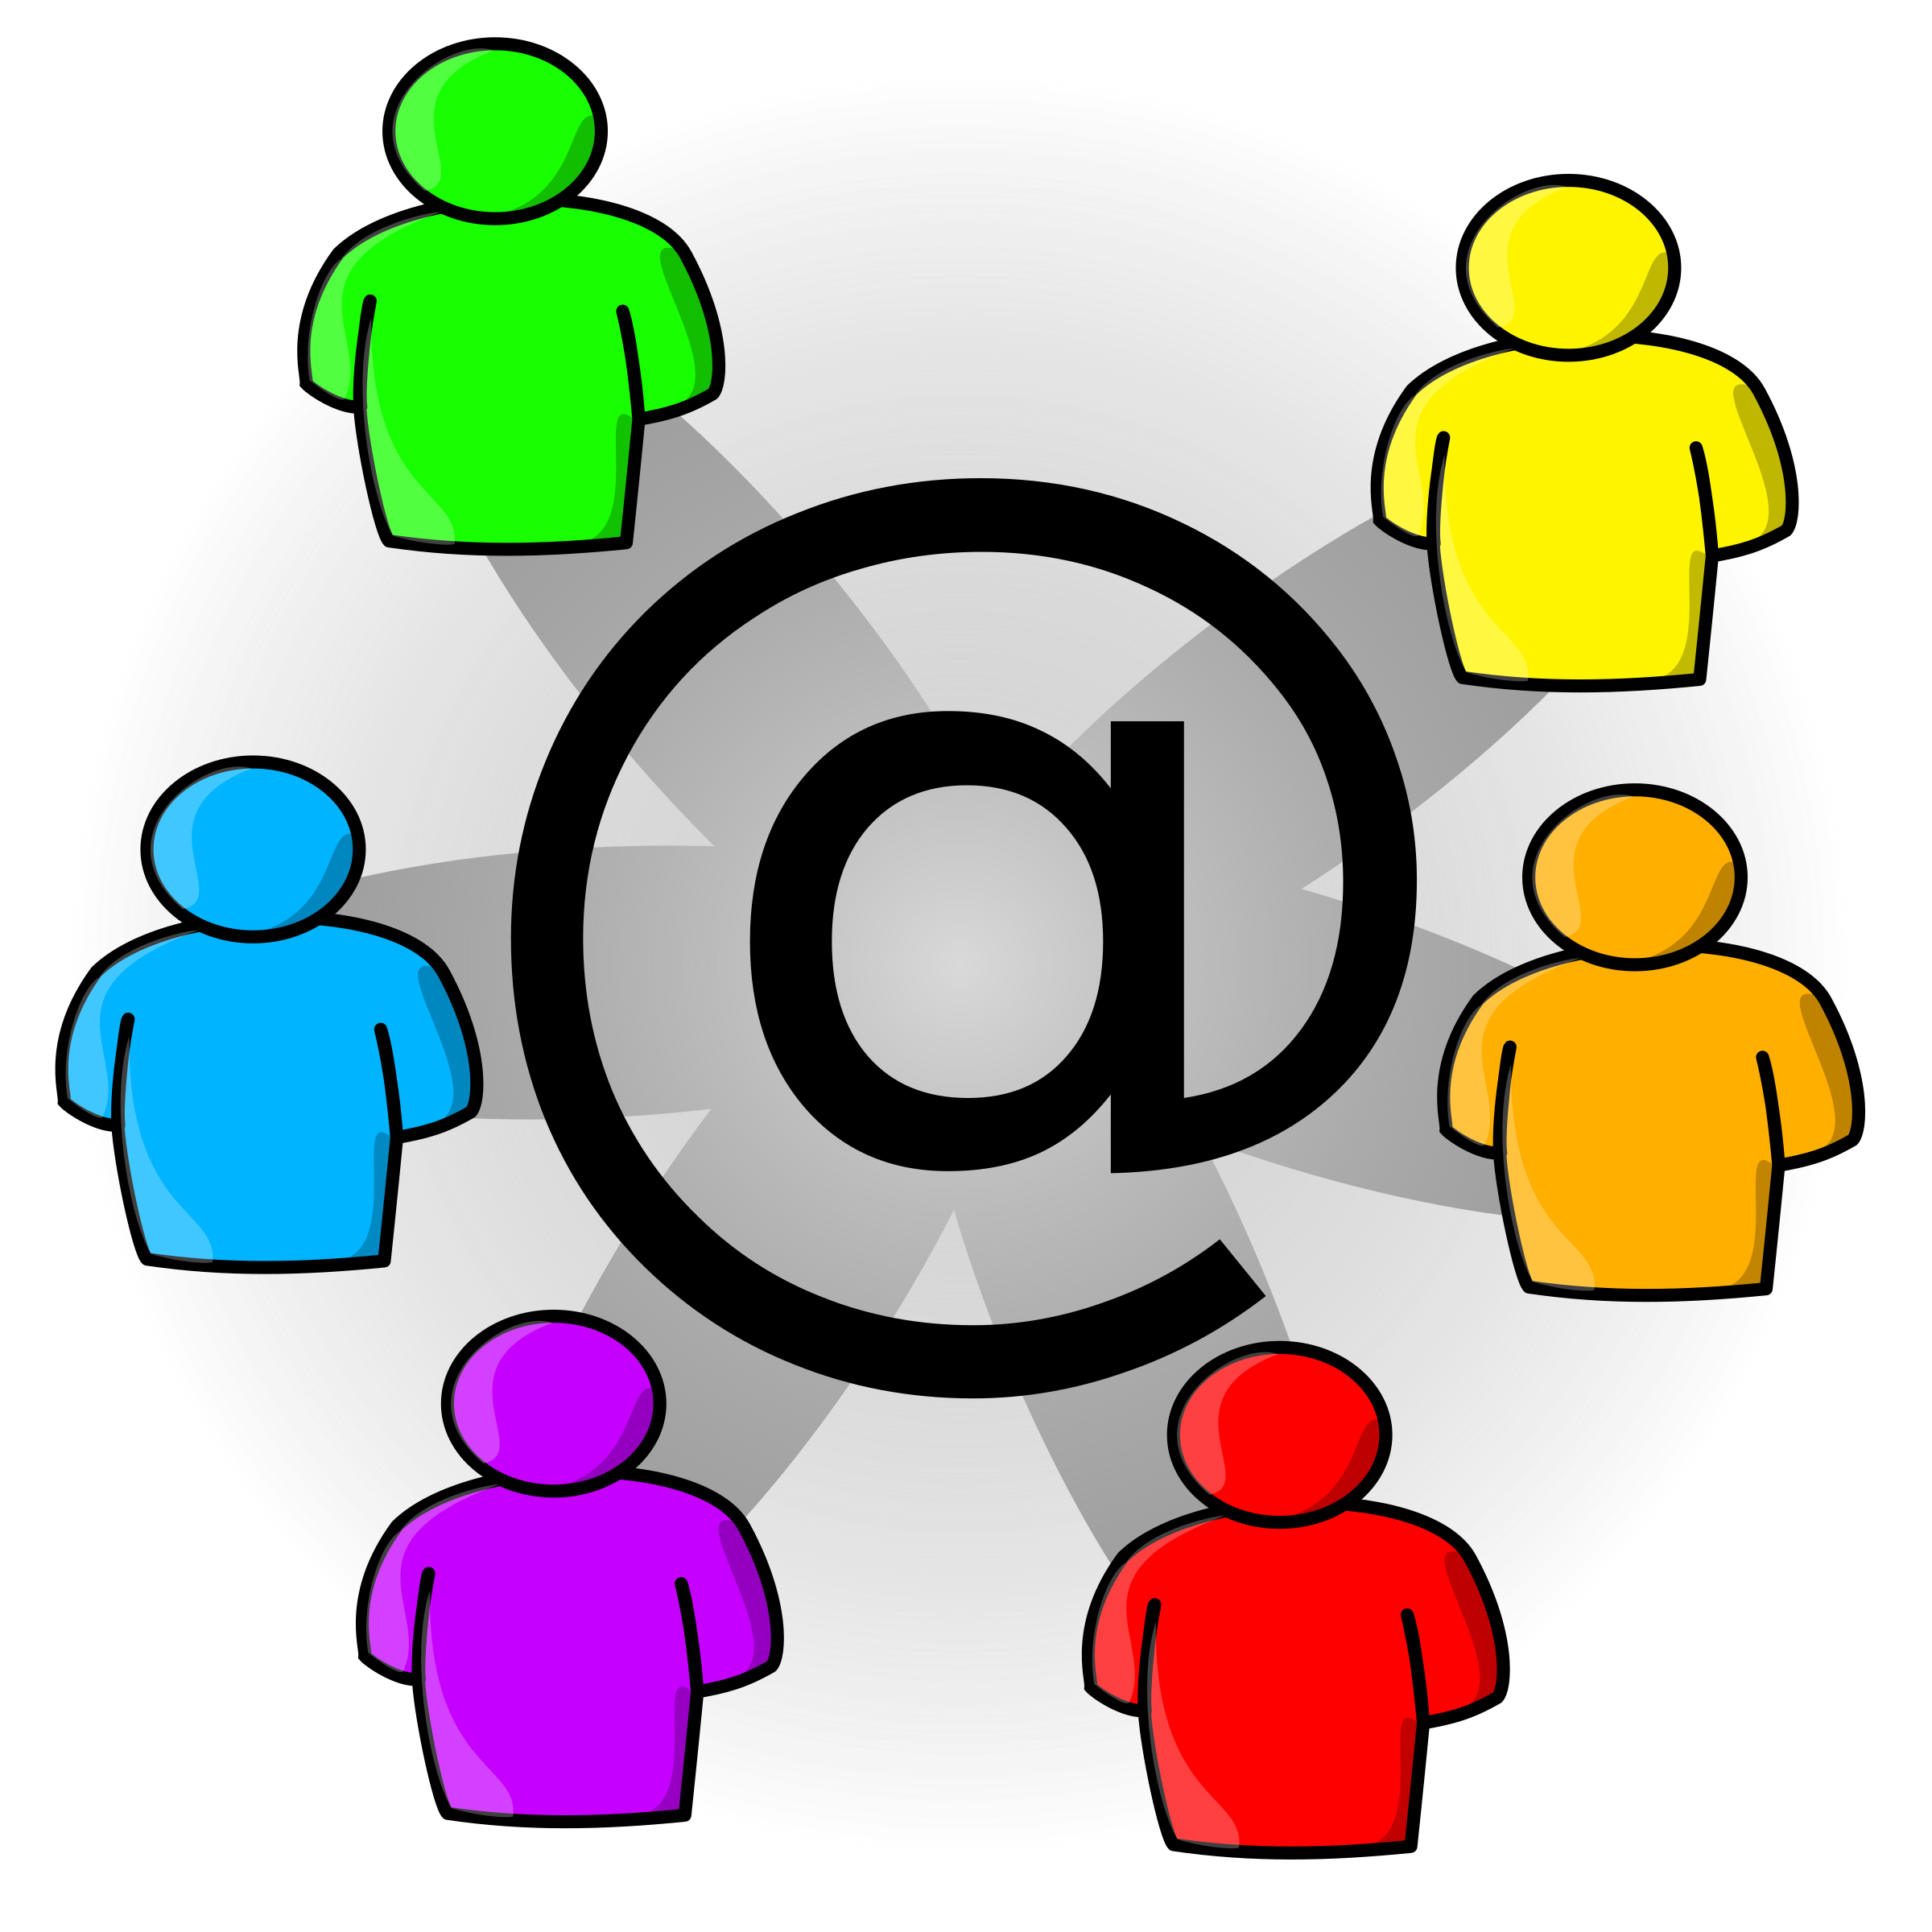 Mailing list icon big. Conversation clipart in depth